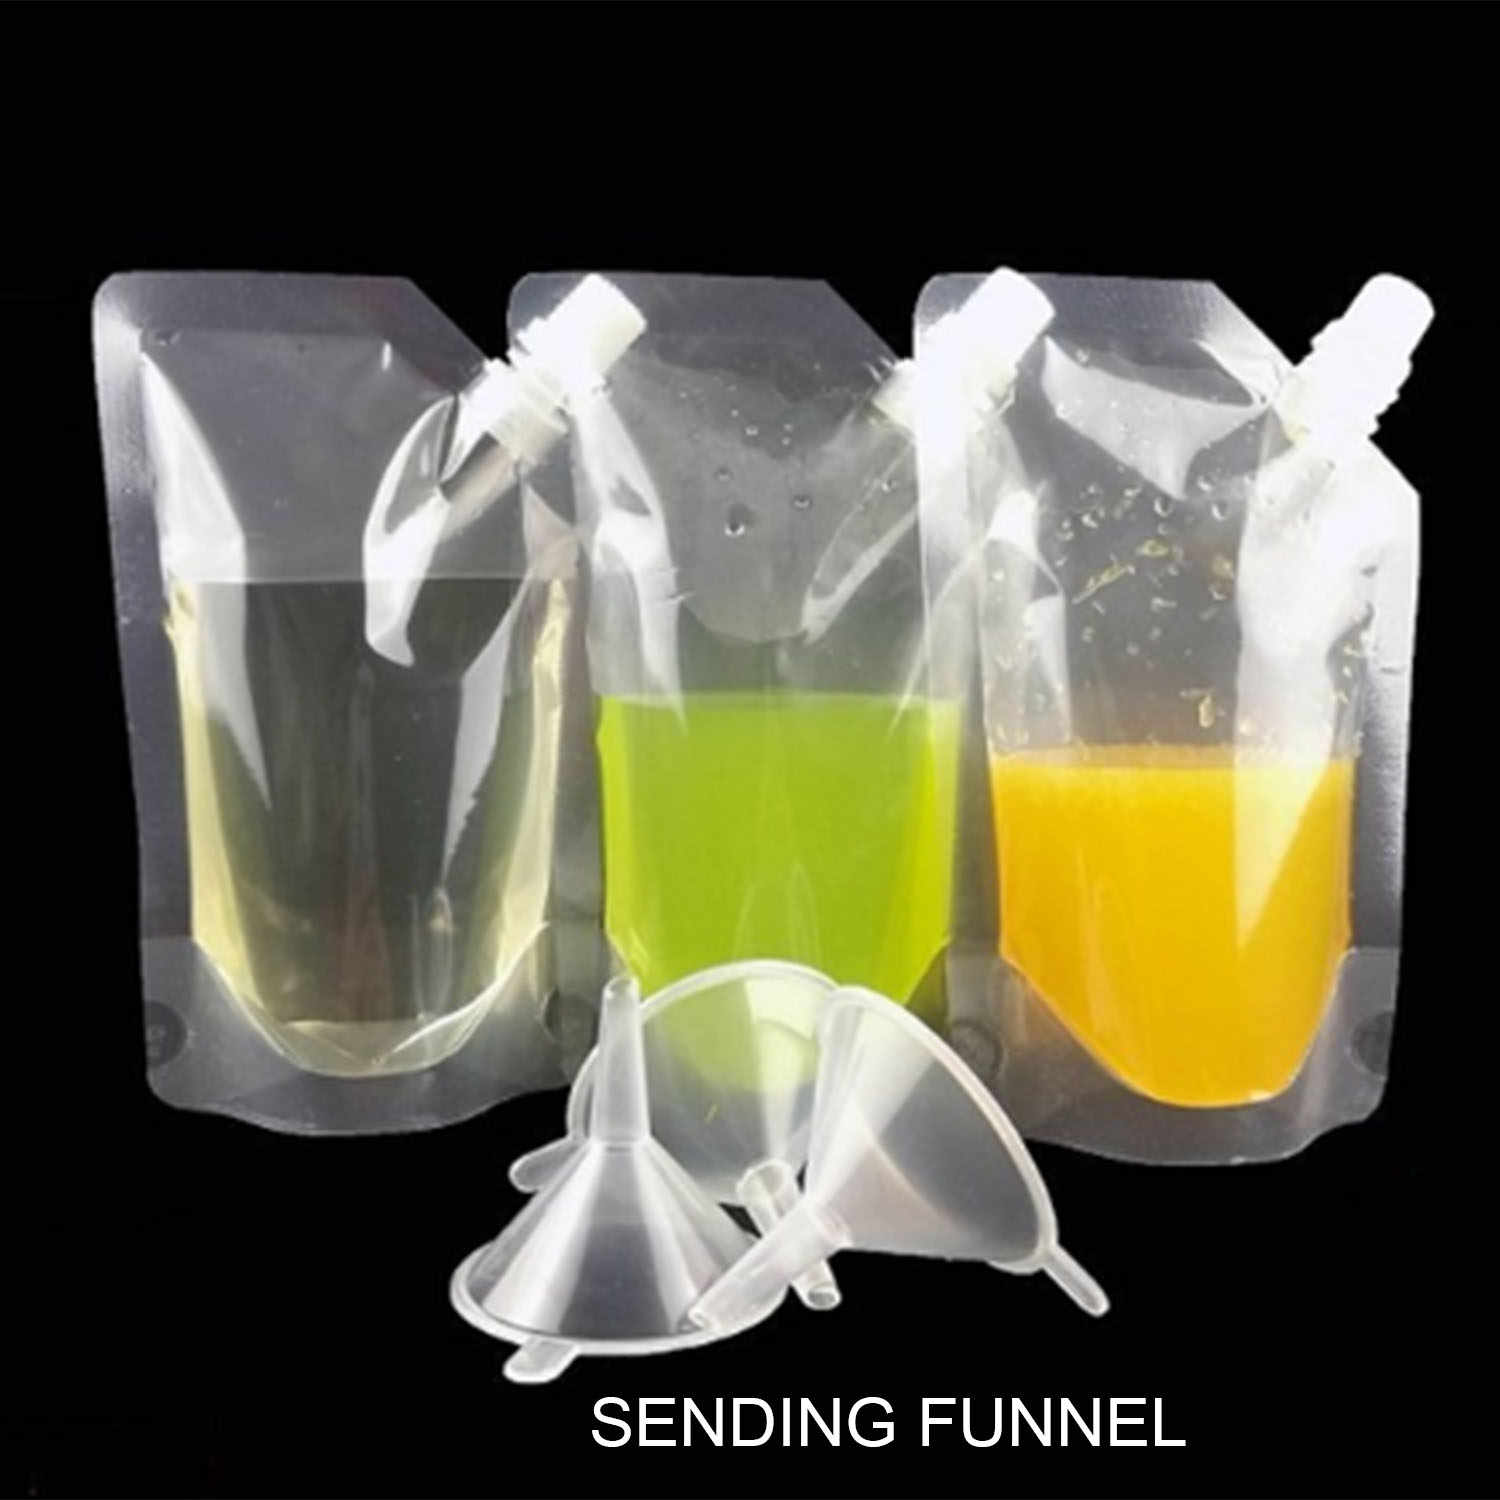 50Pcs Stand-Up Plastic Drink Packaging Bag Spout Pouch For Beverage Liquid Juice Milk Coffee Nozzle Bag Oblique Mouth Drink Ba